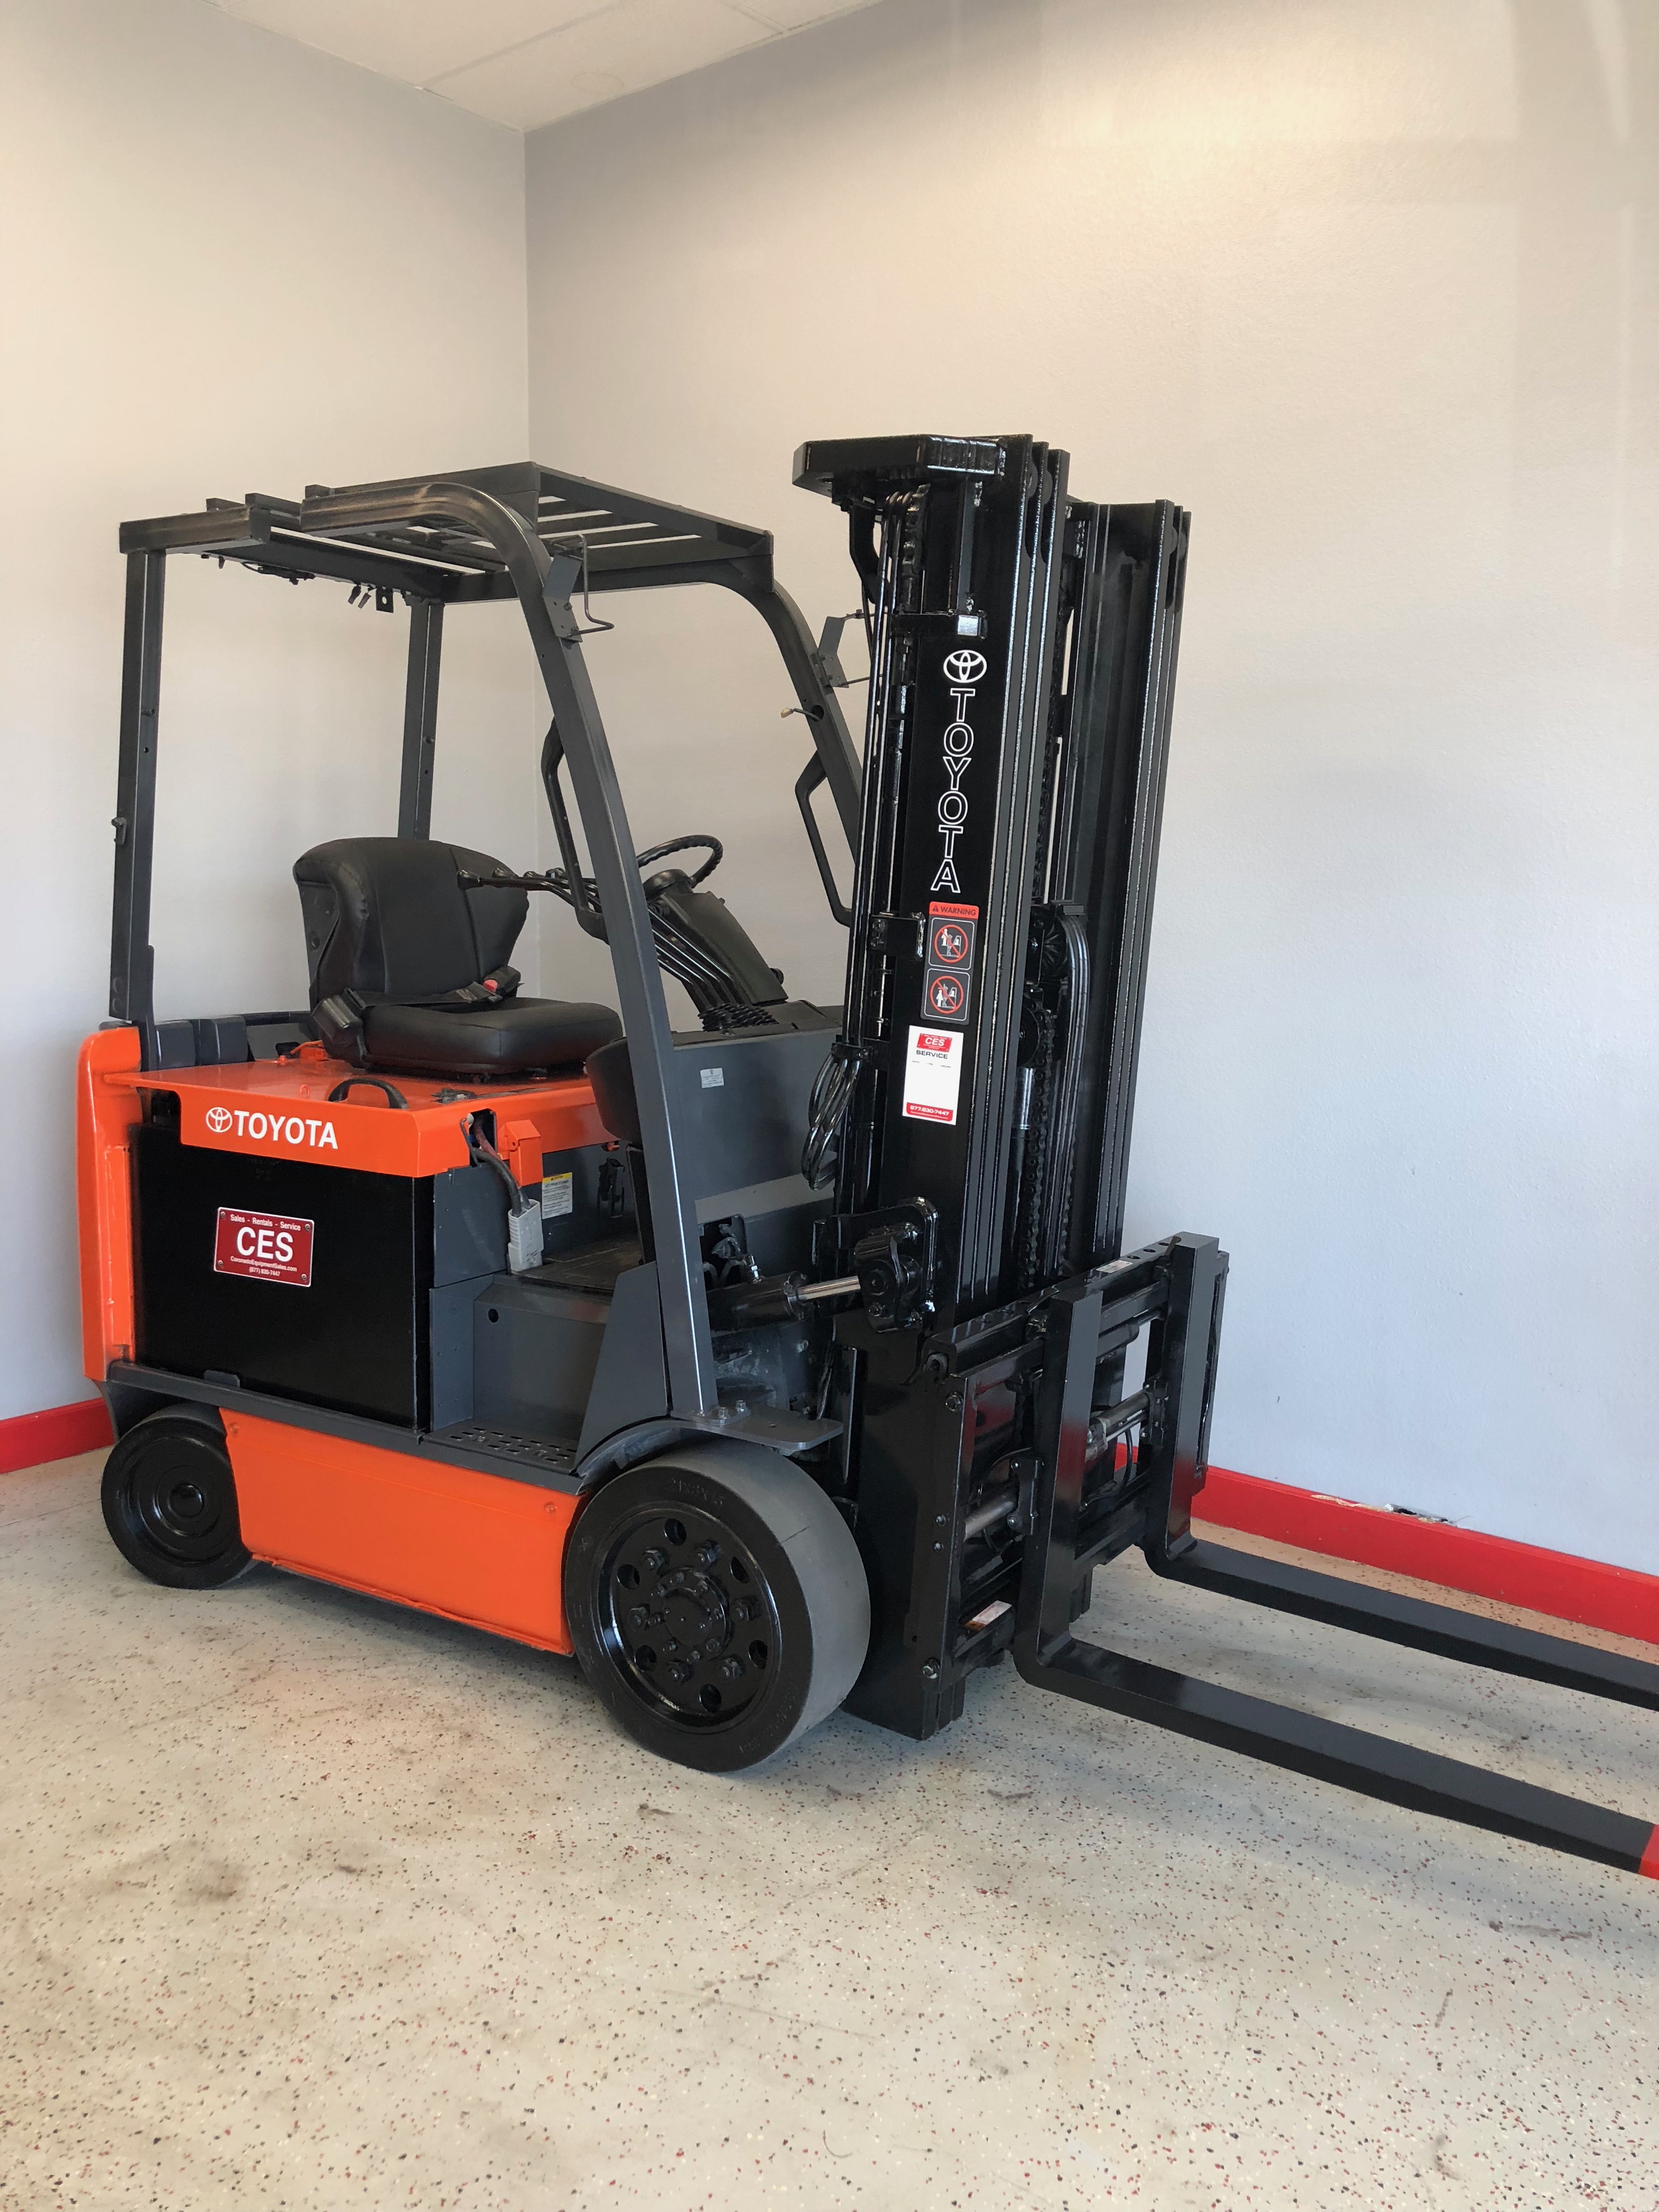 Toyota forklift servicemanual 7fbcu25